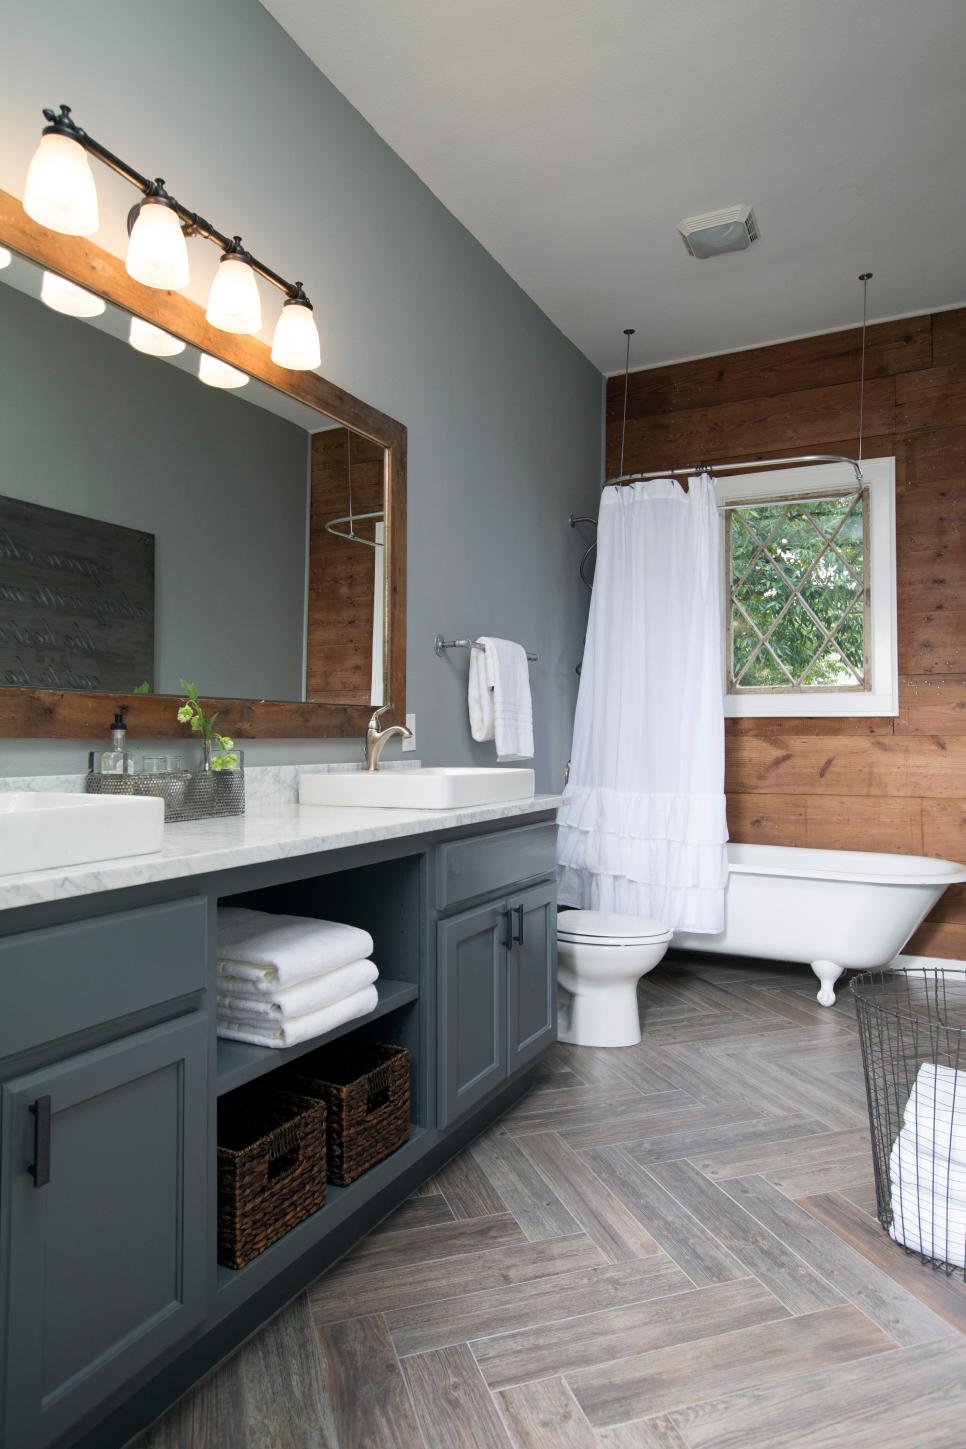 Fixer upper bathroom before afters house of hargrove - What kind of paint do you use in a bathroom ...